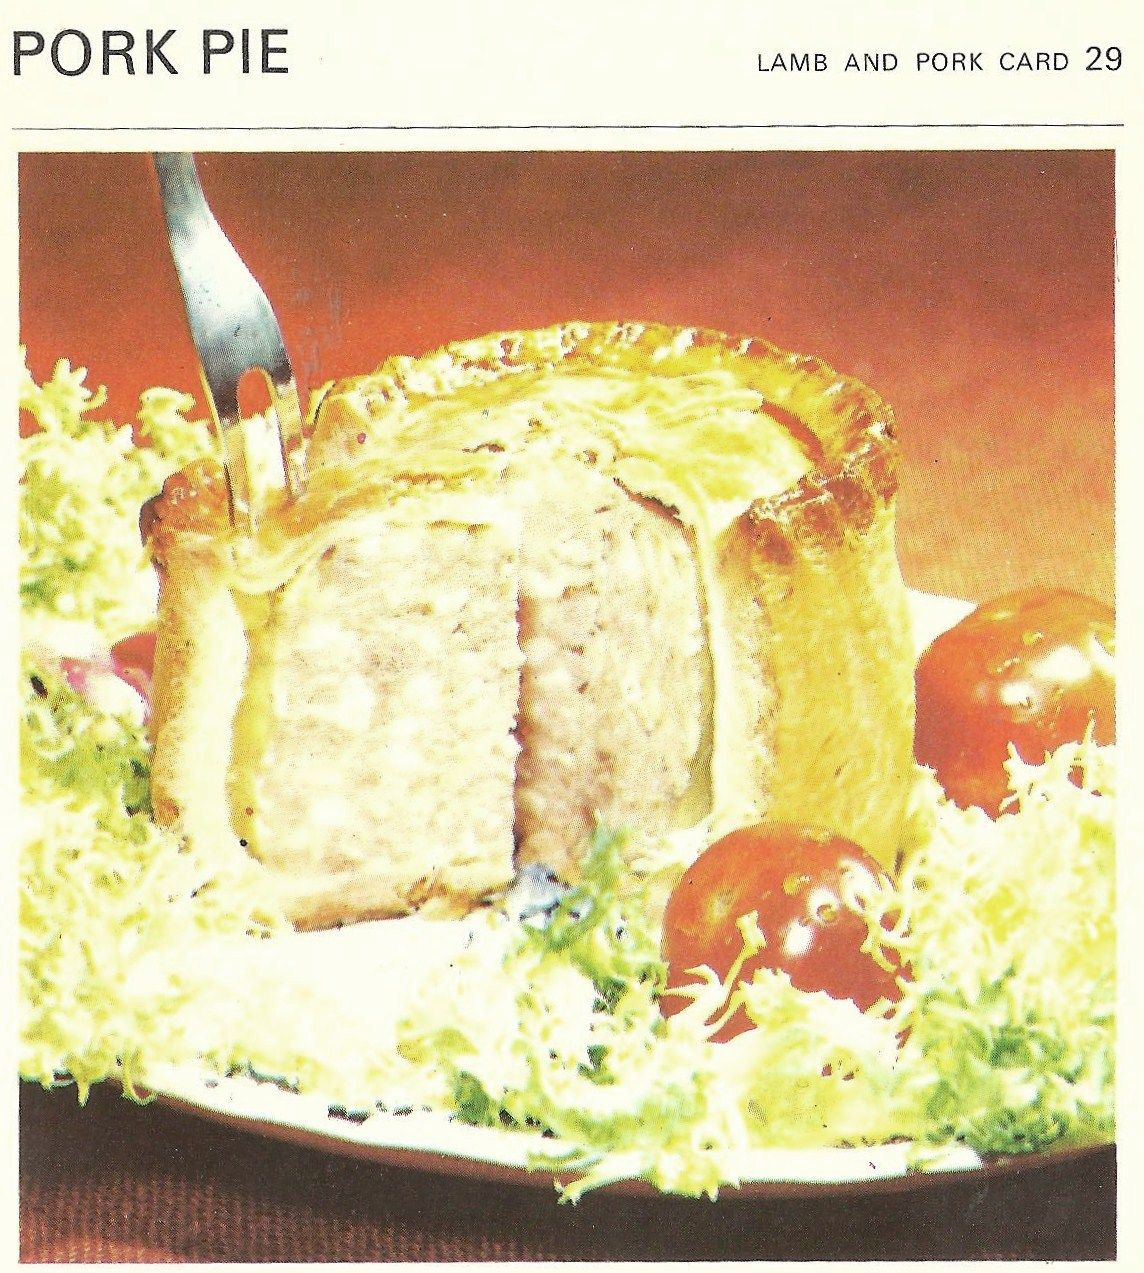 Bad and ugly of retro food marguerite patten i barely knew ye bad and ugly of retro food marguerite patten i barely knew ye recipe cards 12 forumfinder Gallery